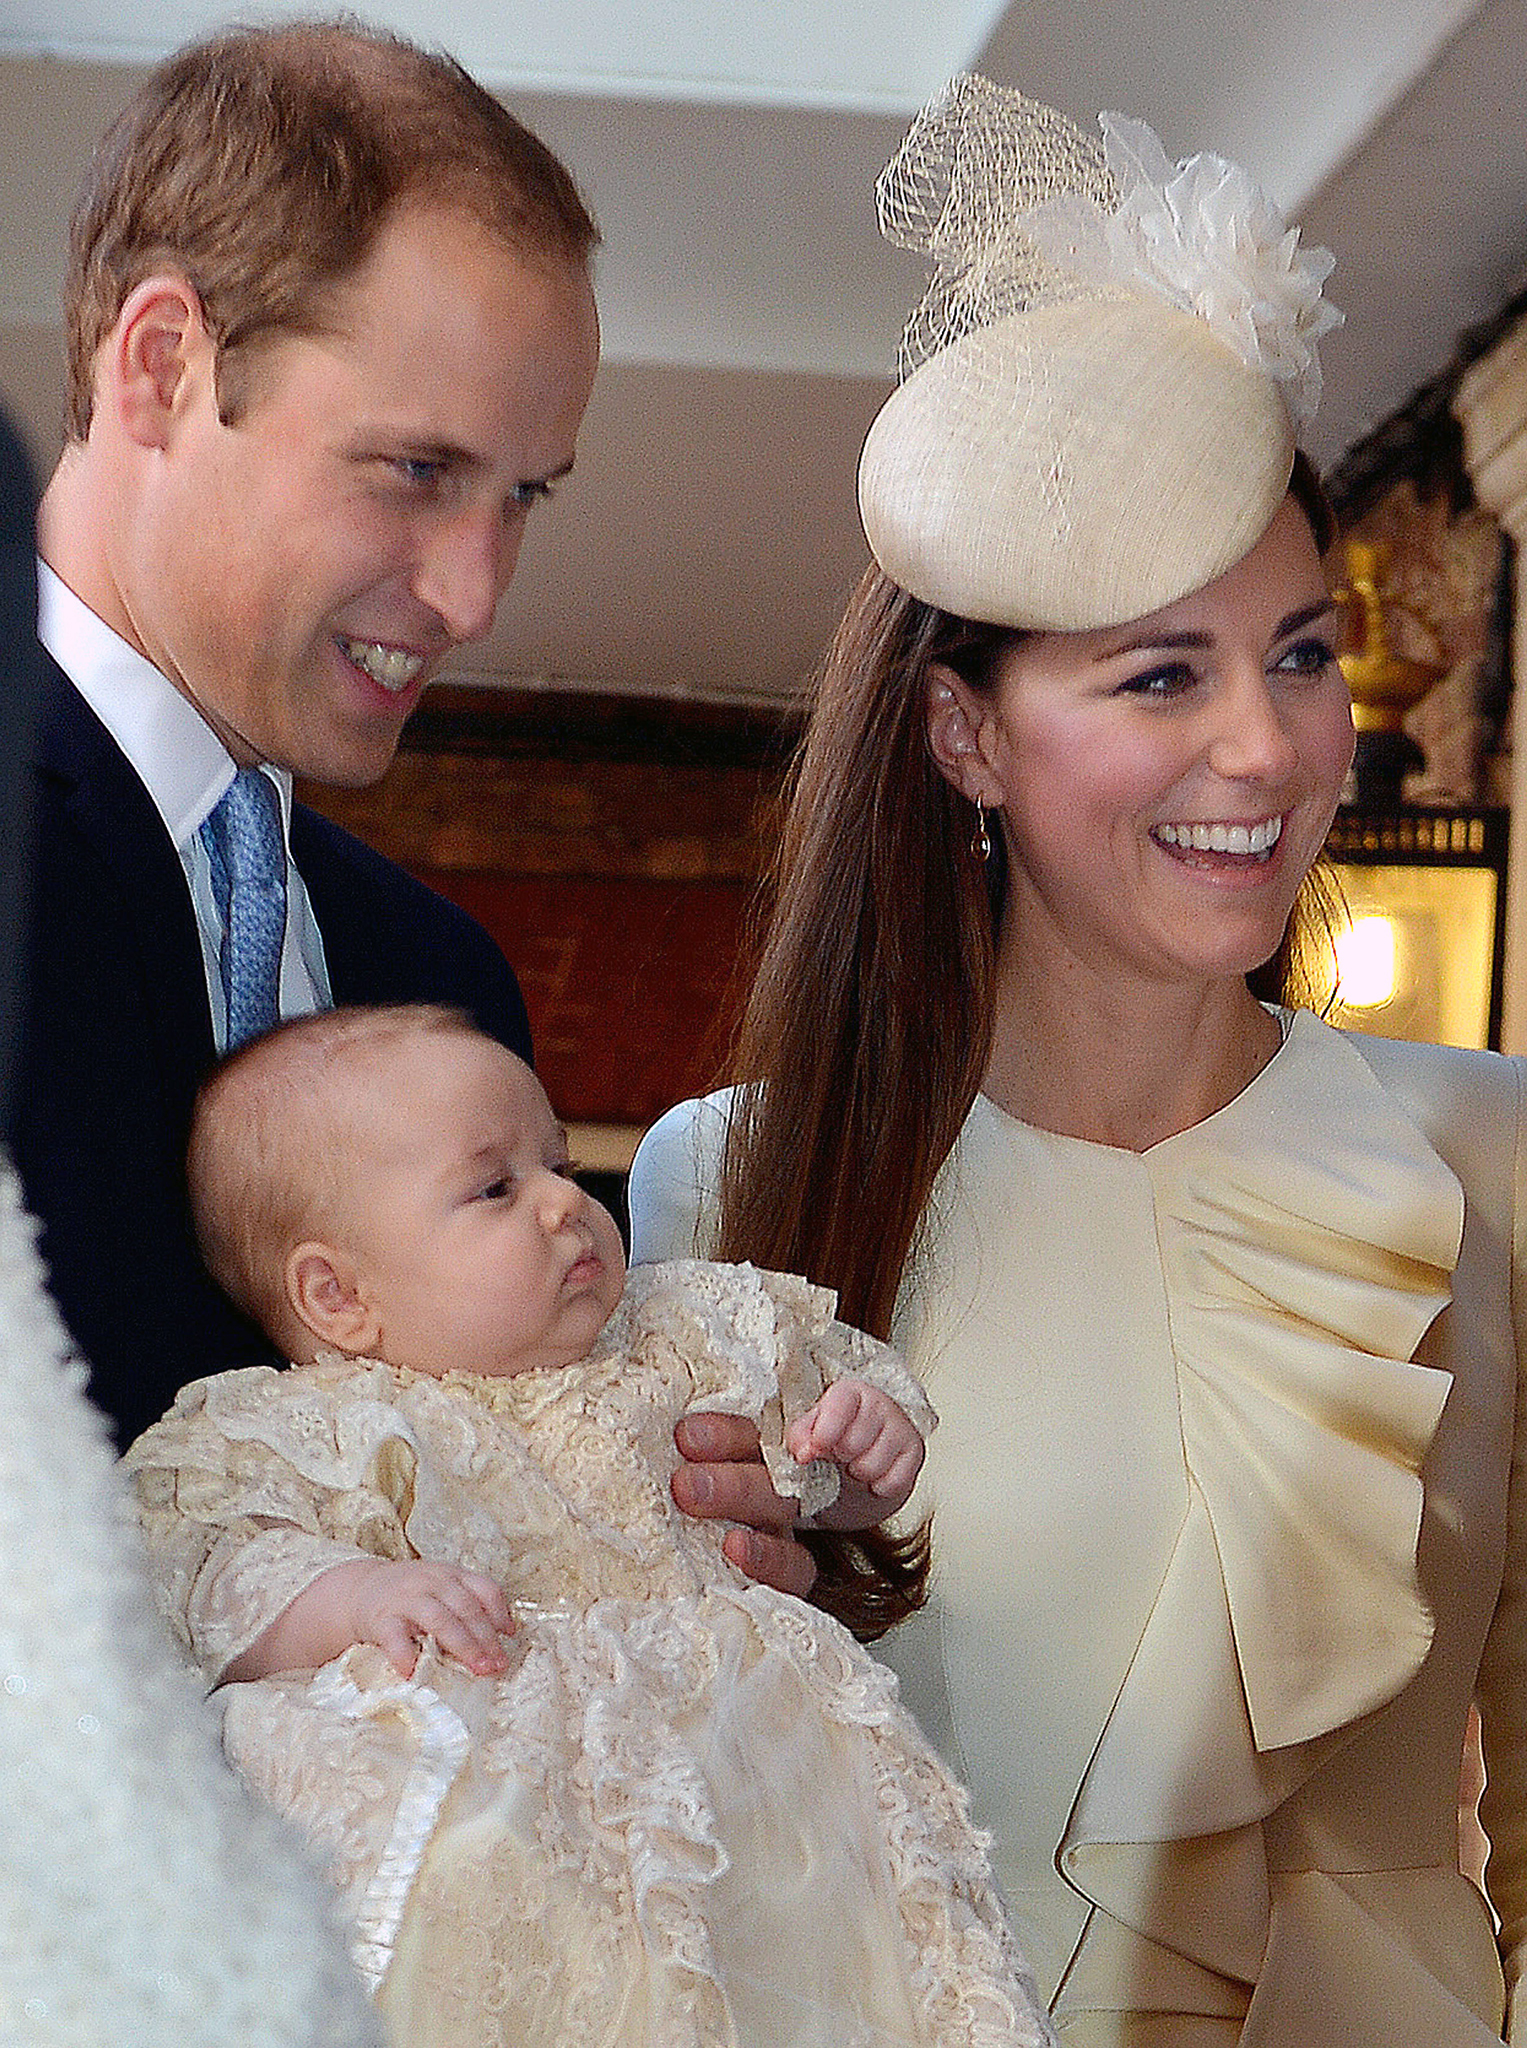 The happy family on October 23. (Getty Images)